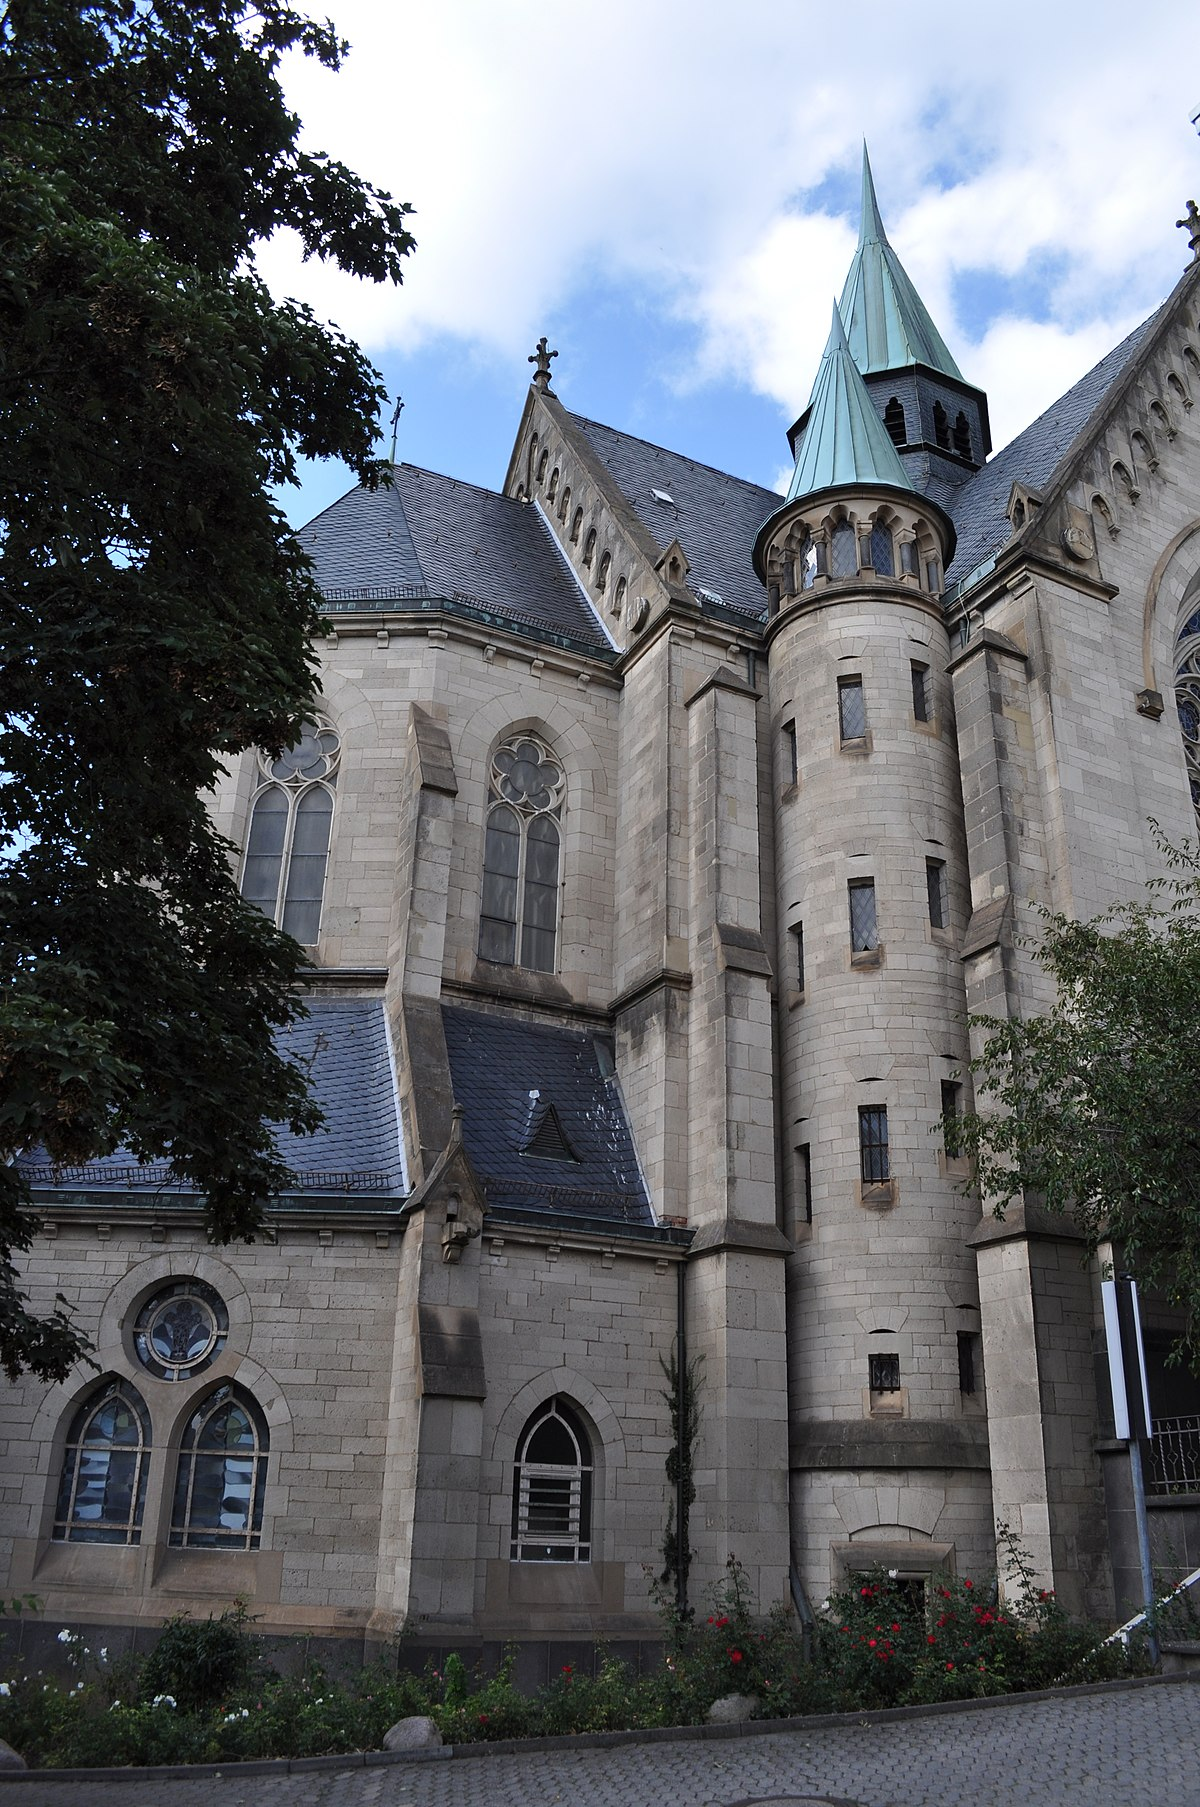 marienkirche bad homburg wikipedia. Black Bedroom Furniture Sets. Home Design Ideas